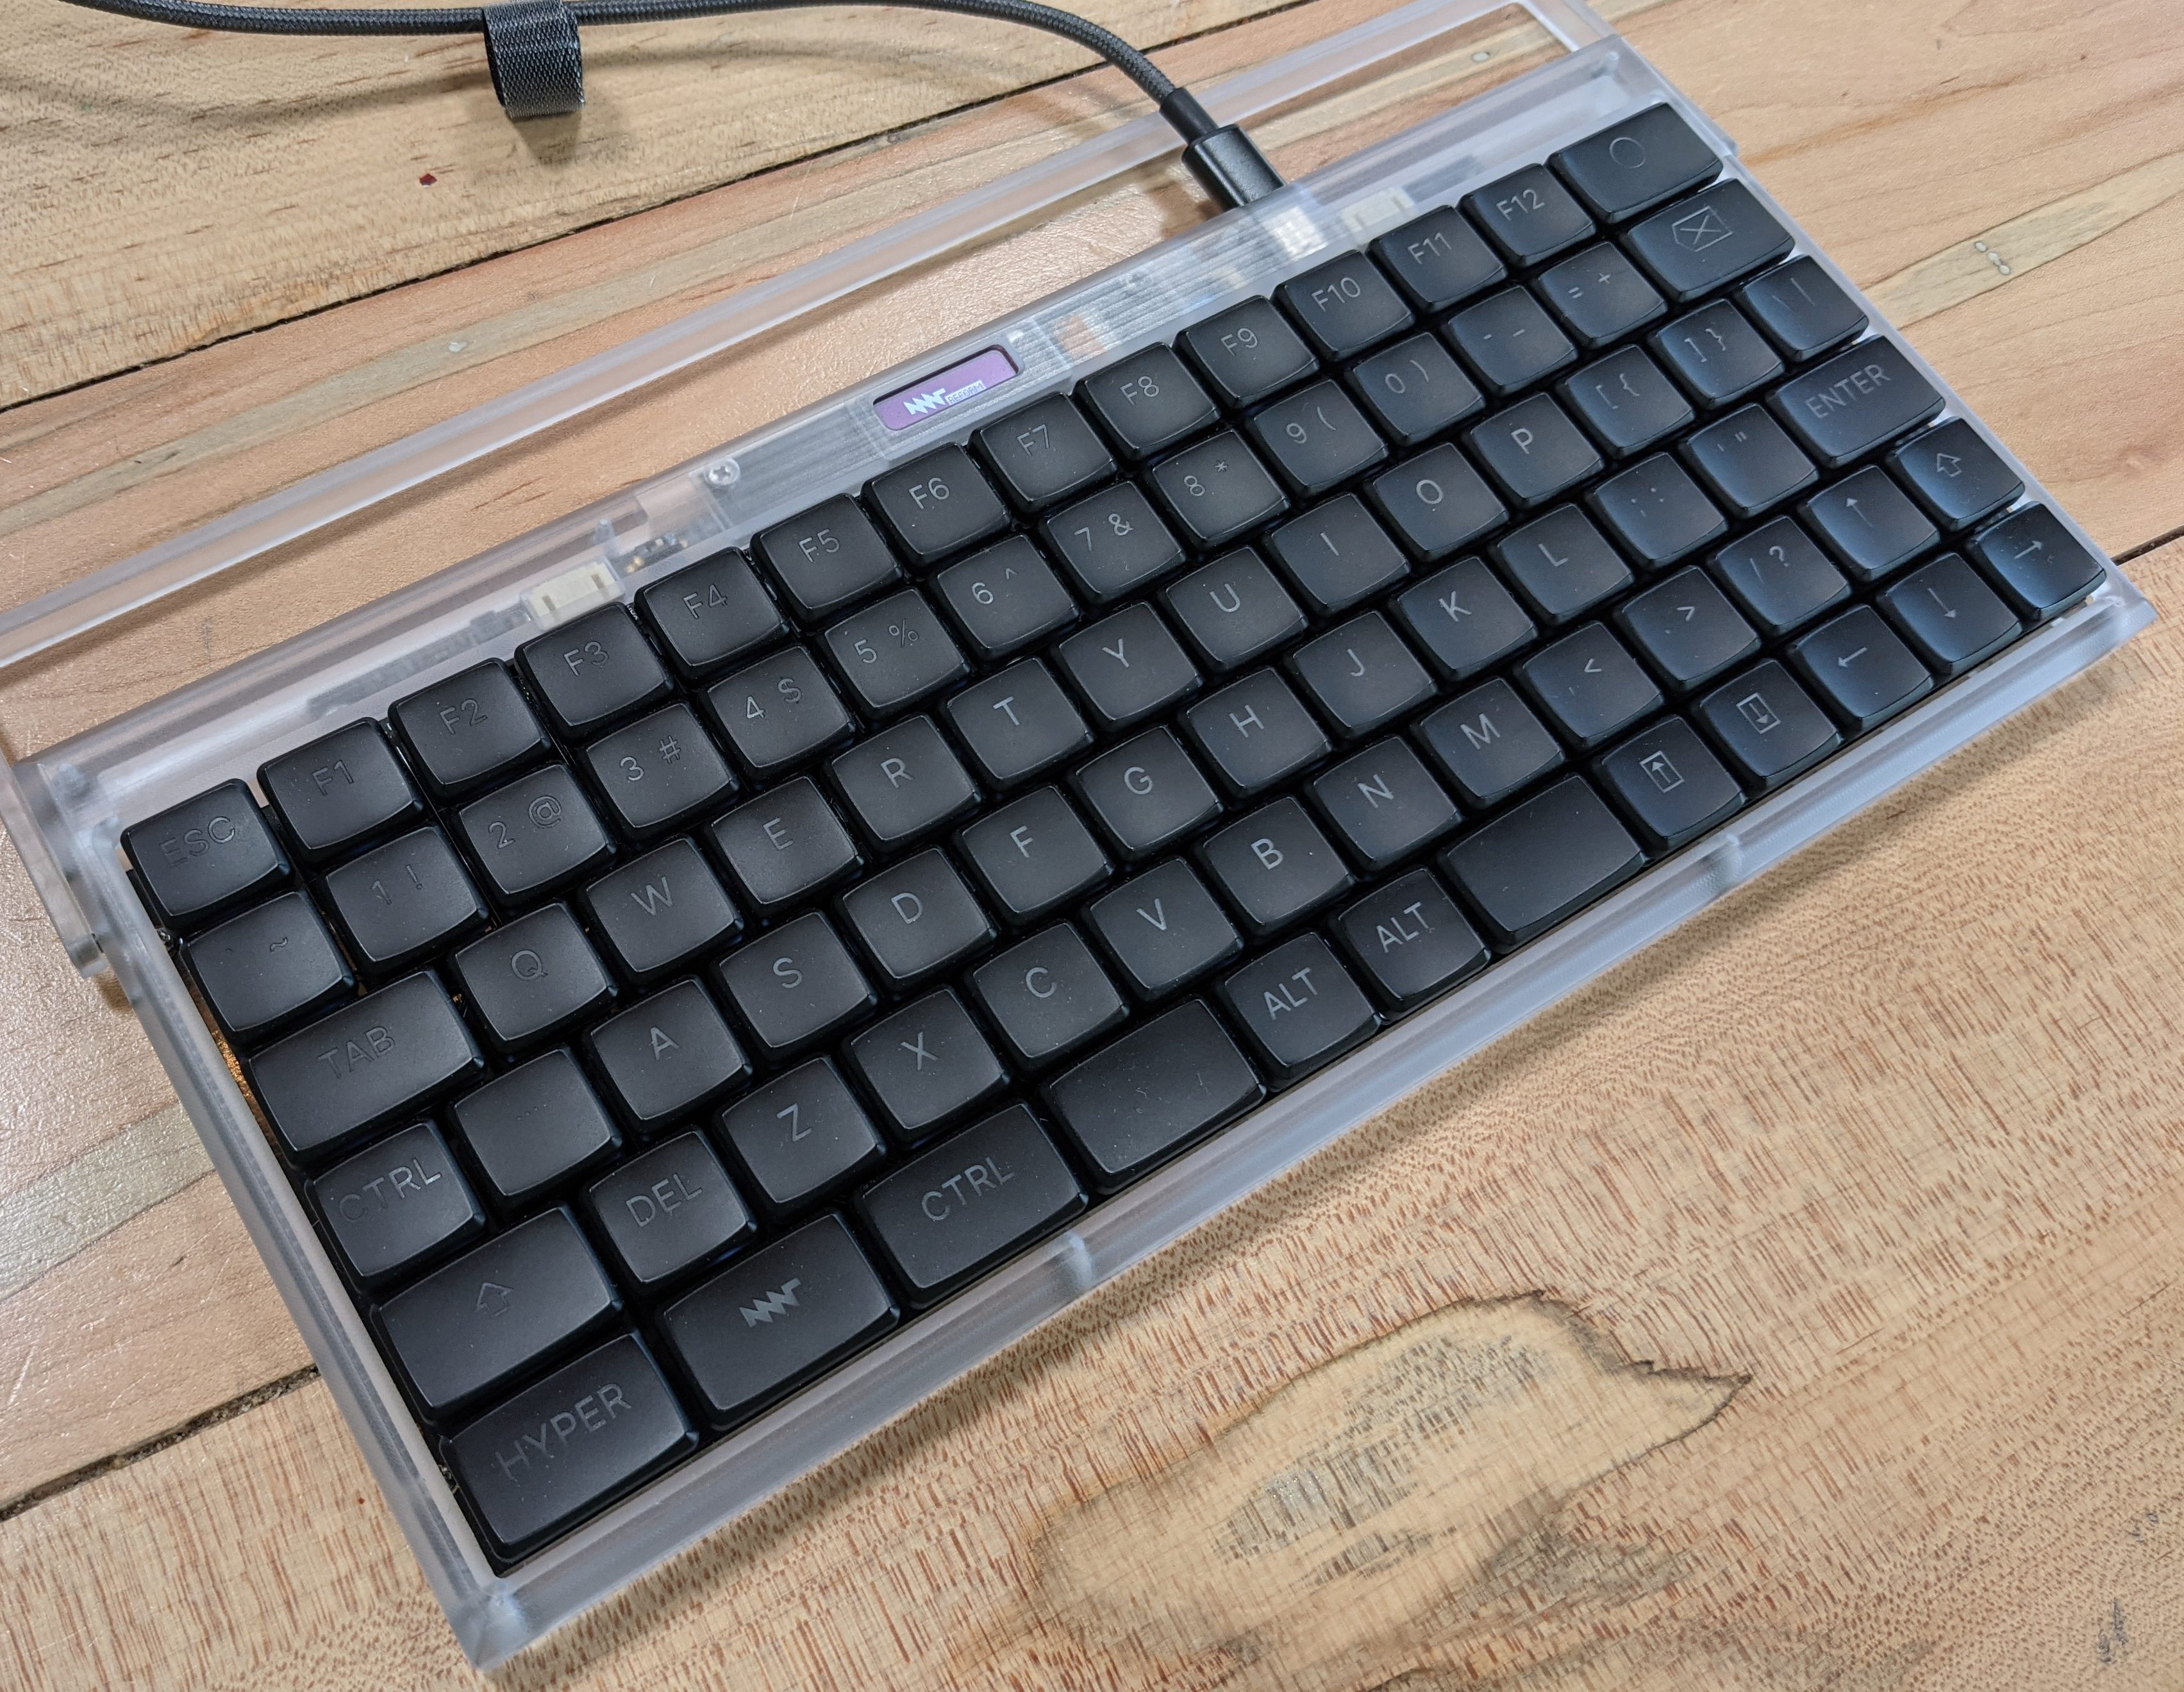 a standalone keyboard made from the keyboard in a MNT Reform laptop